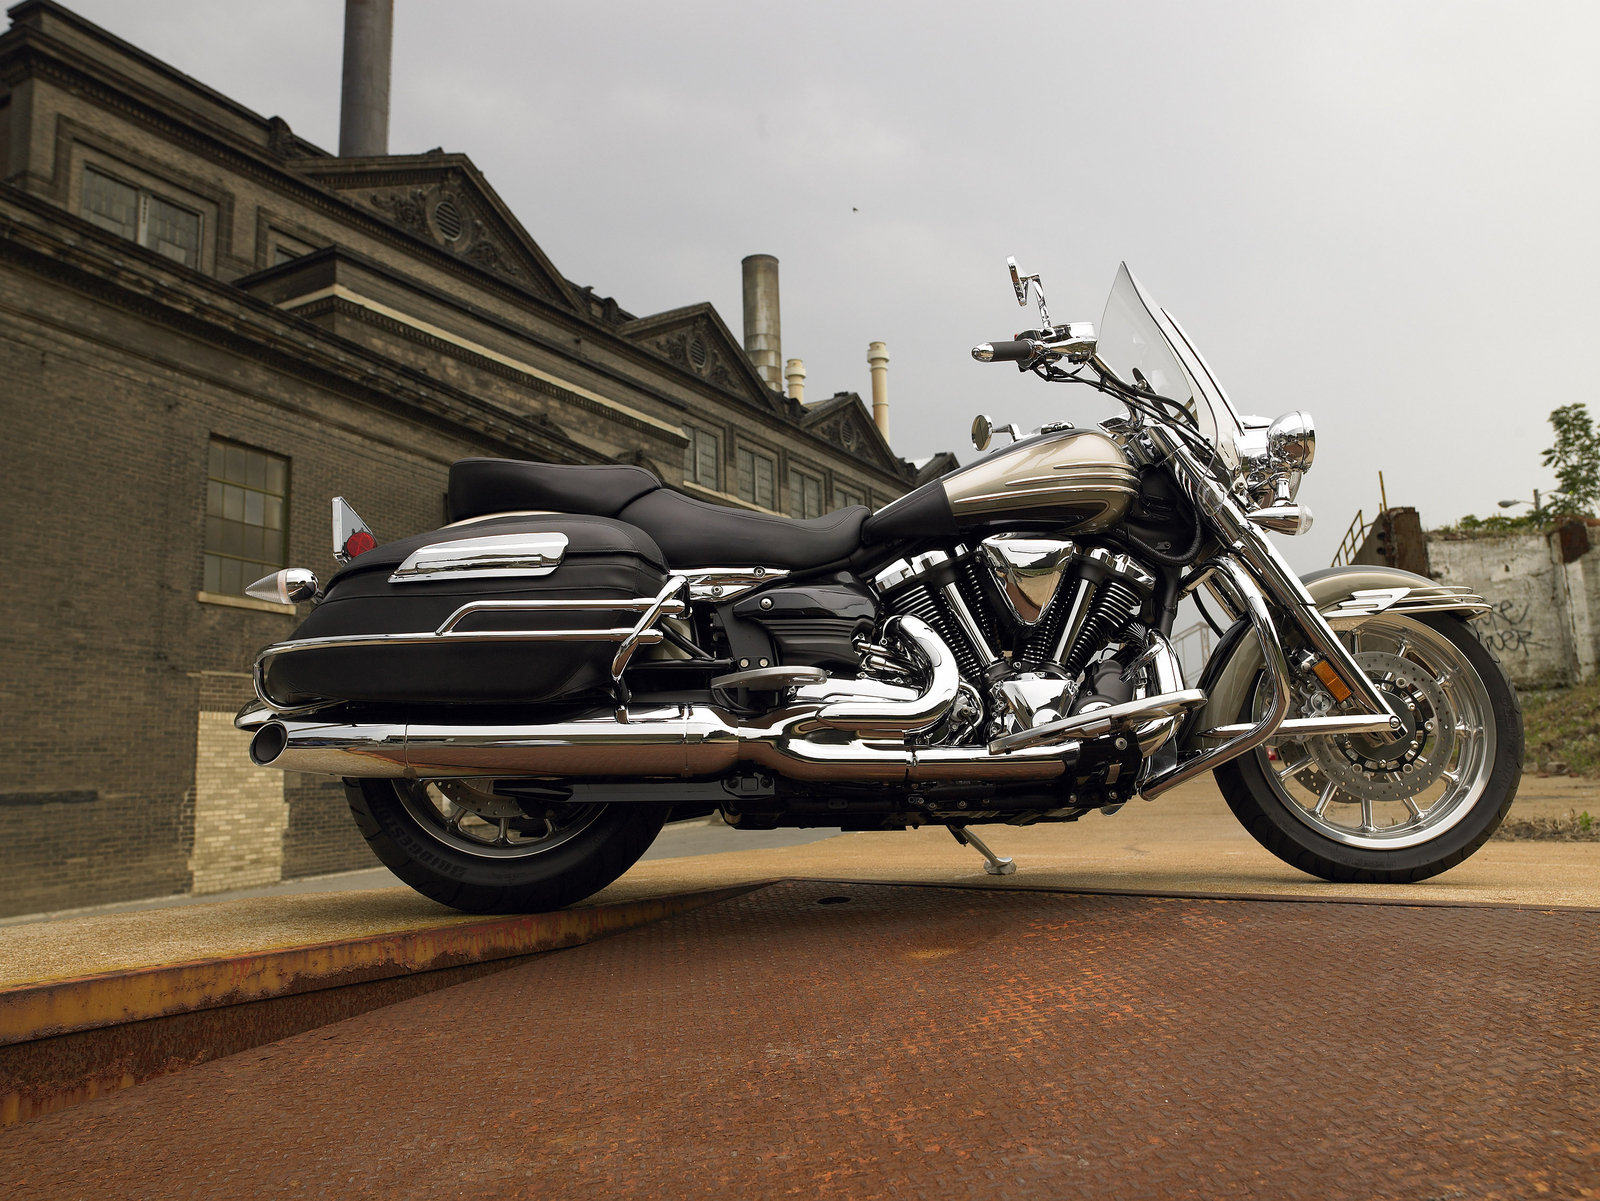 2006 yamaha stratoliner s picture 46285 motorcycle for 2006 yamaha stratoliner review